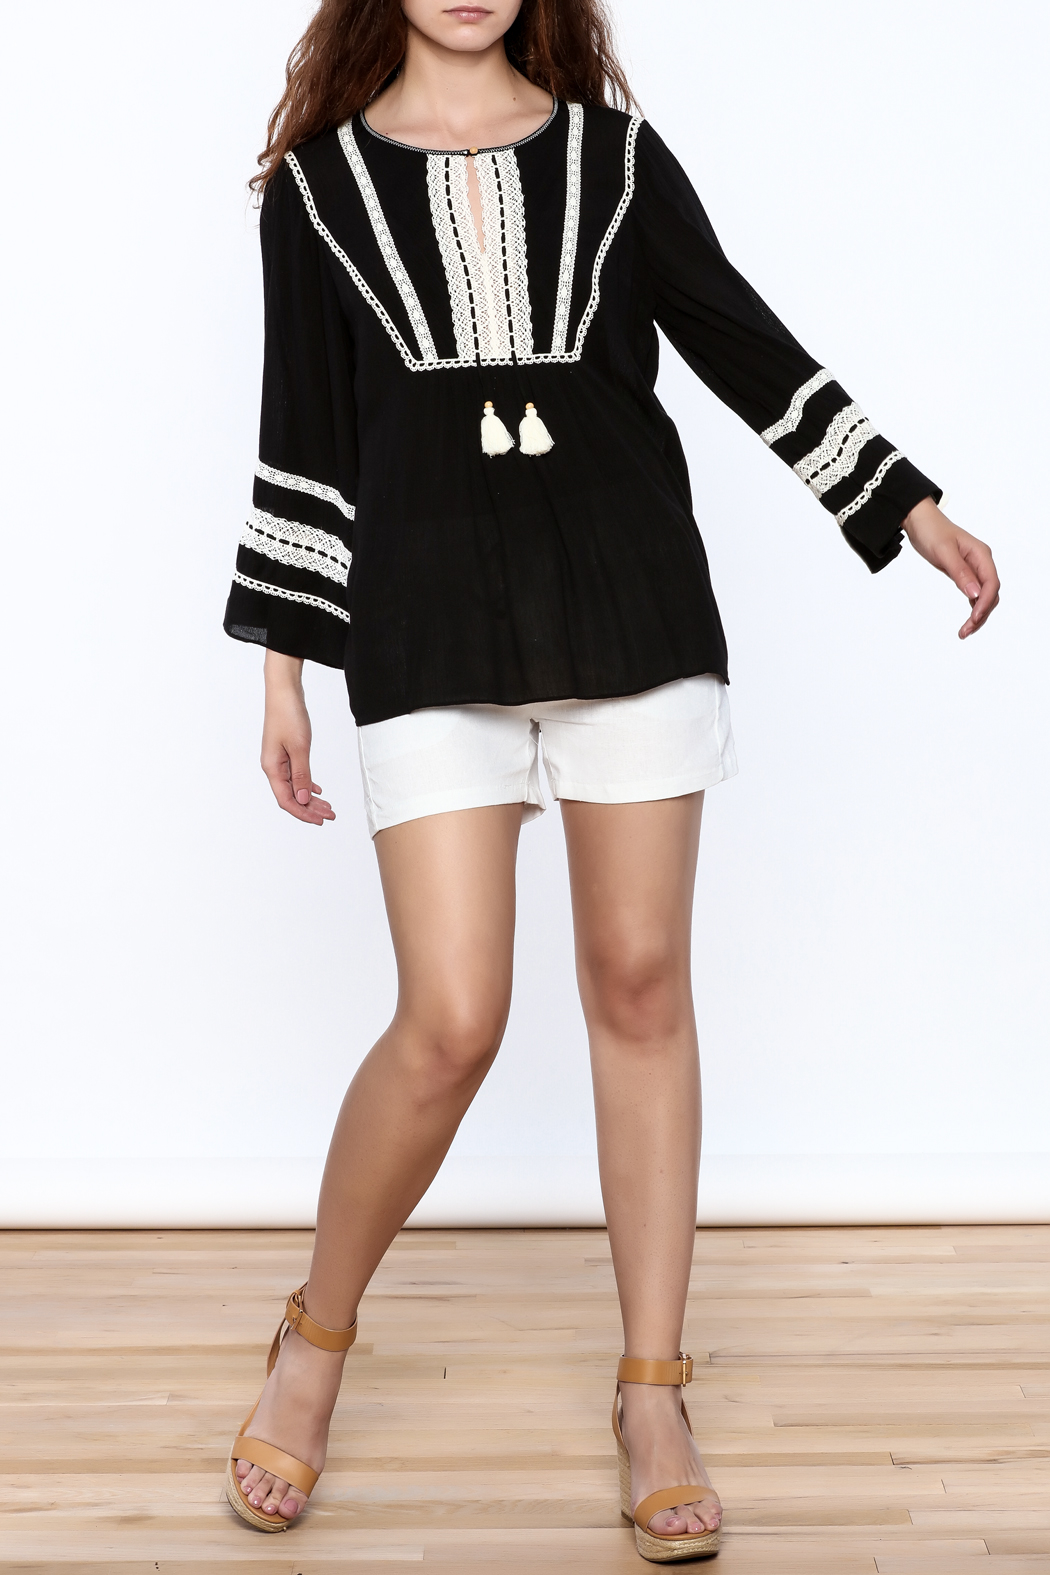 Hale Bob Black Embroidered Tunic Top - Front Full Image